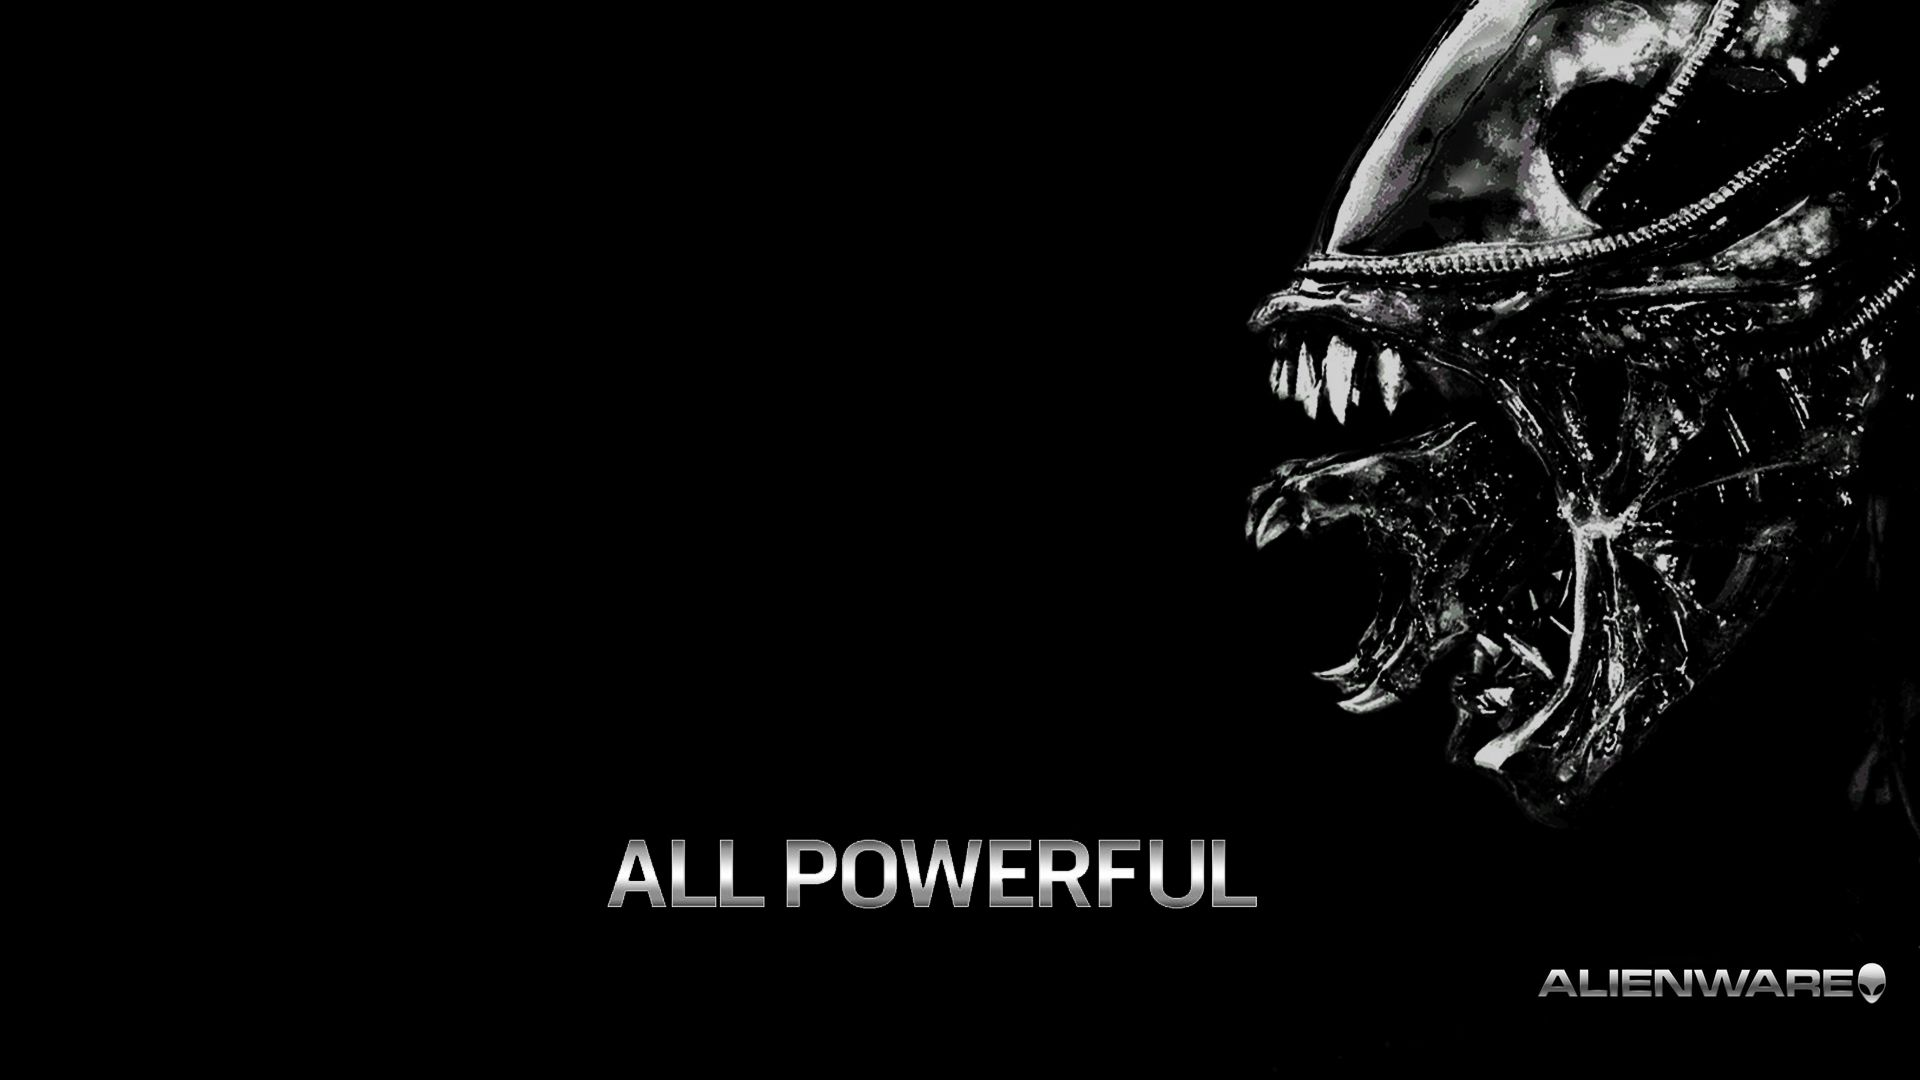 alienware hd wallpaper for alienware laptops |  wallpapers for pc